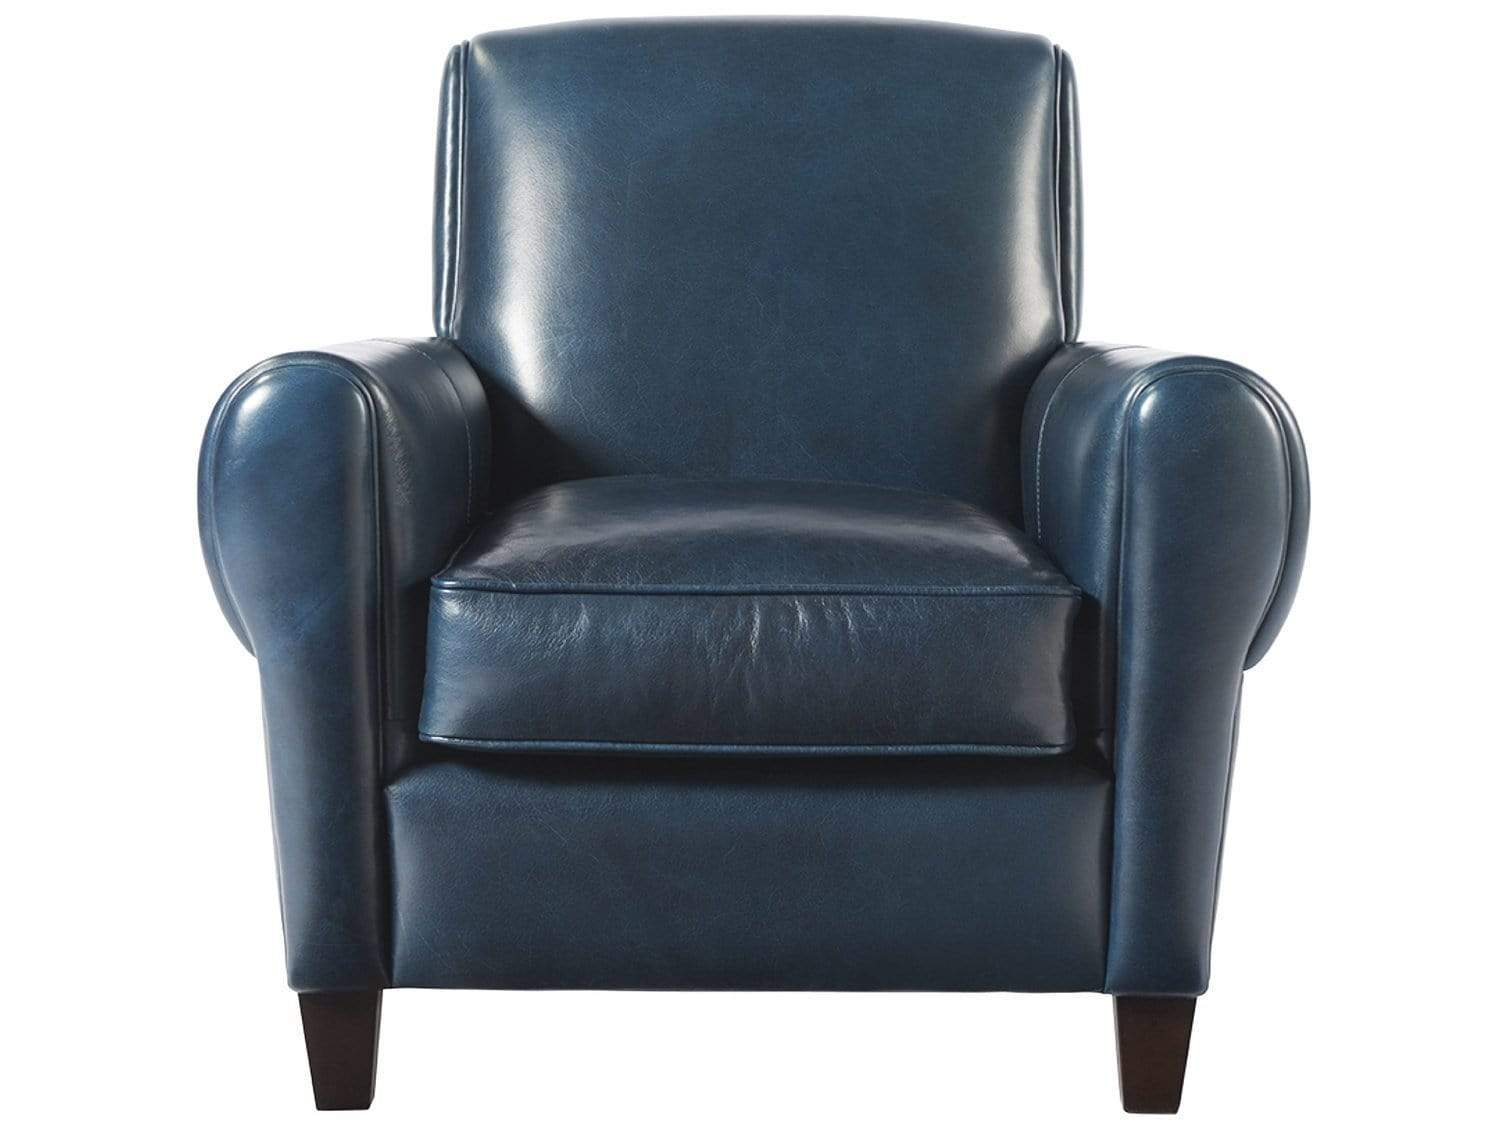 Alchemy Living Alchemy Living Malibu Pink Sands Accent Chair - Blue 807223